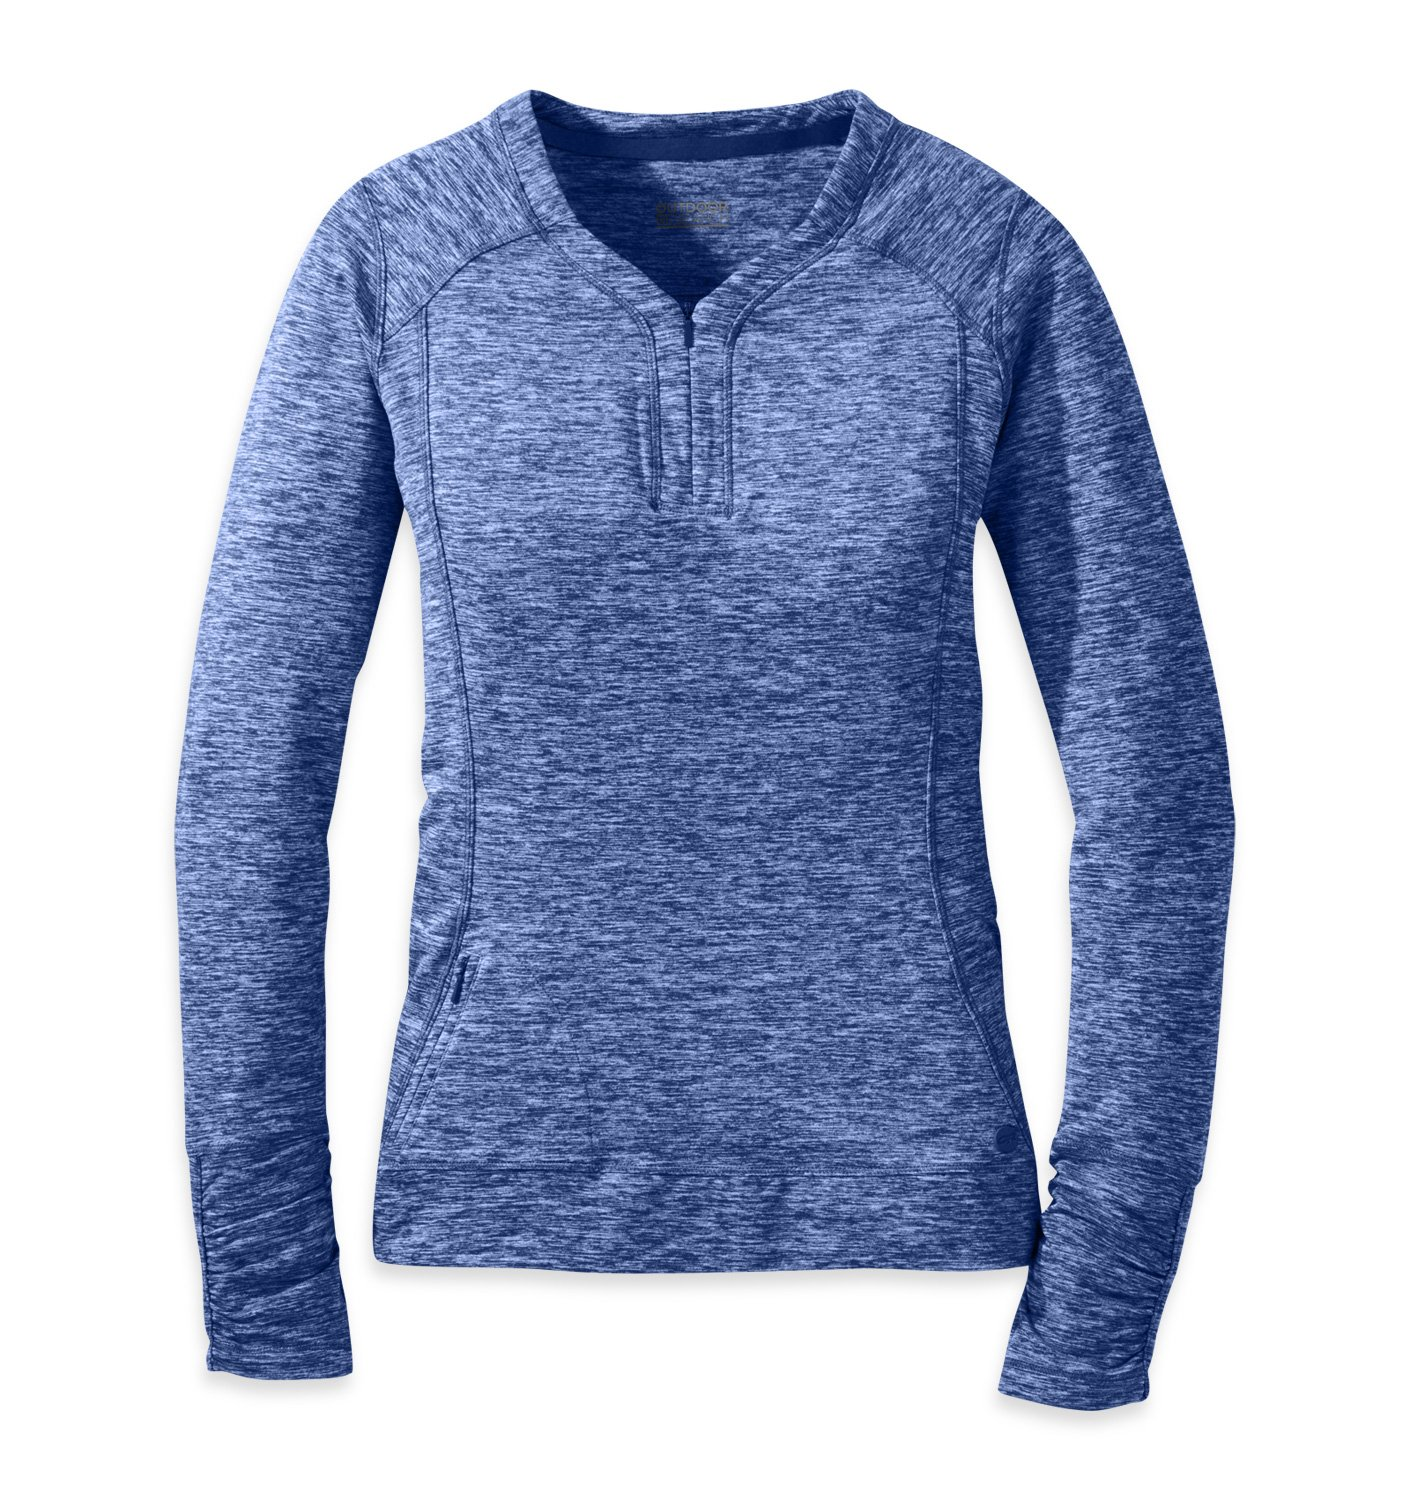 Outdoor Research Women's Melody L/S Shirt, Baltic, Small by Outdoor Research